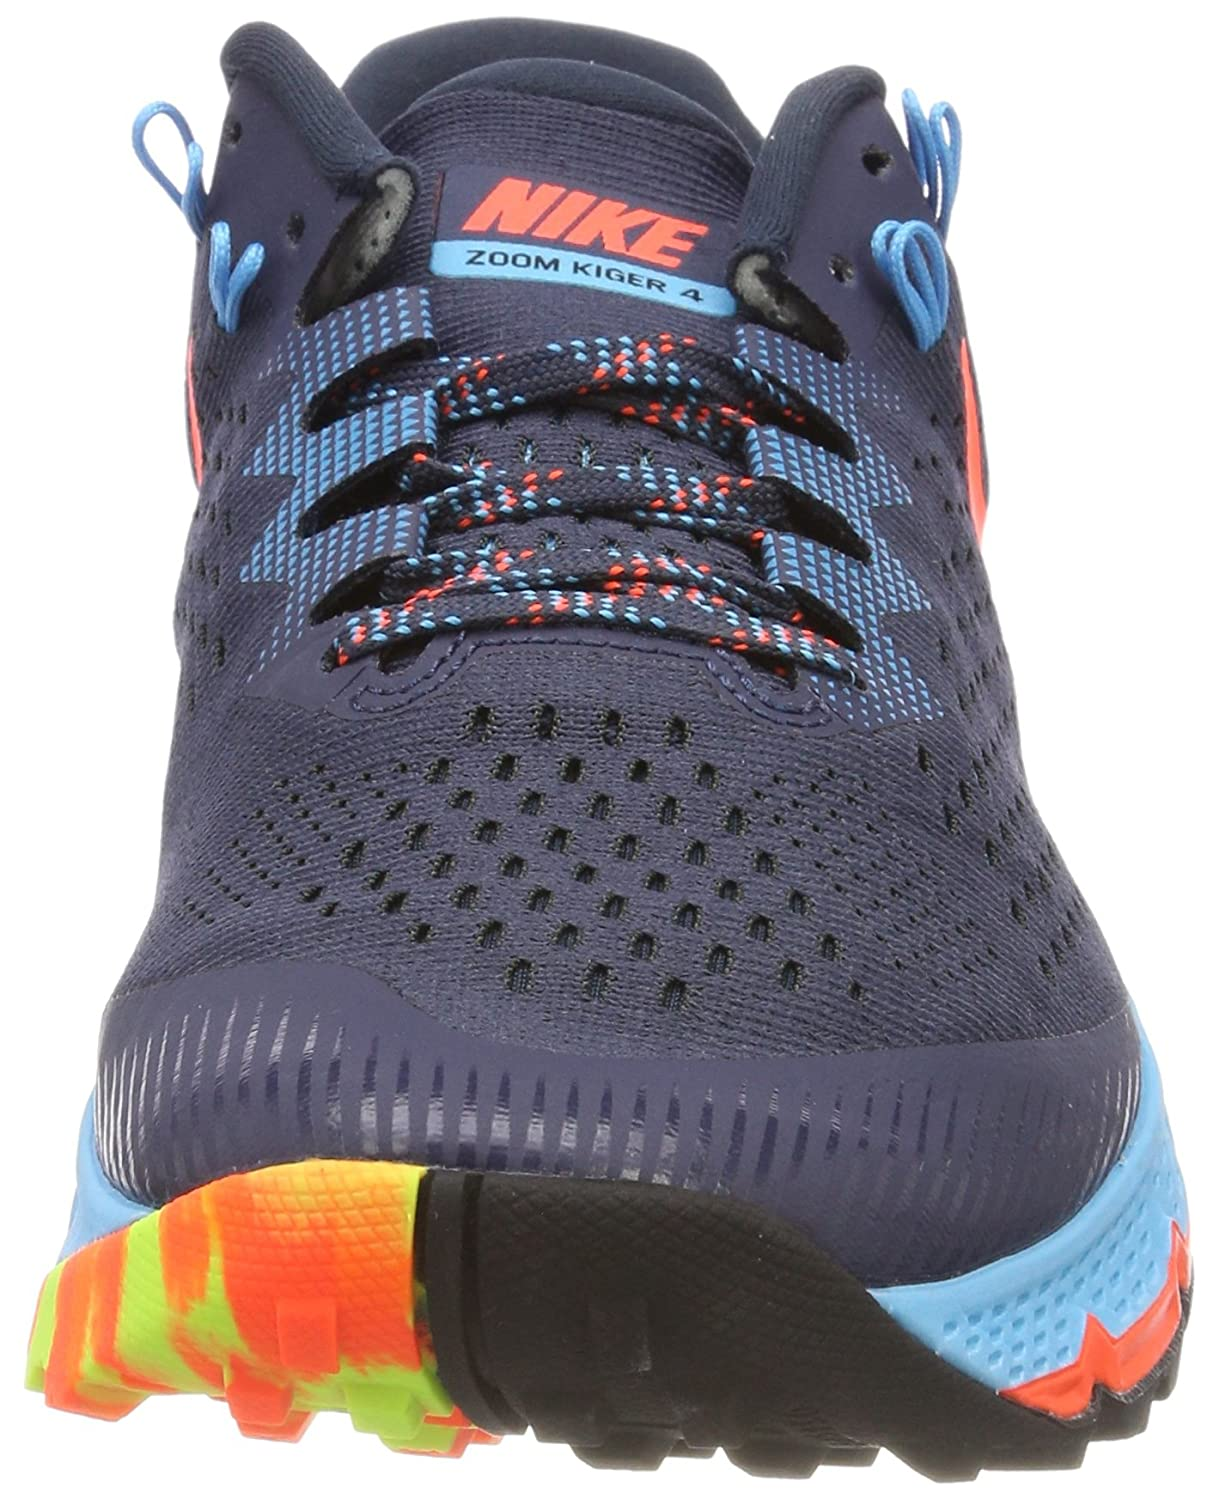 NIKE Air Zoom esecuzione Terra Kiger 4, Scarpe In esecuzione Zoom Uomo, (Donner Total   107ead